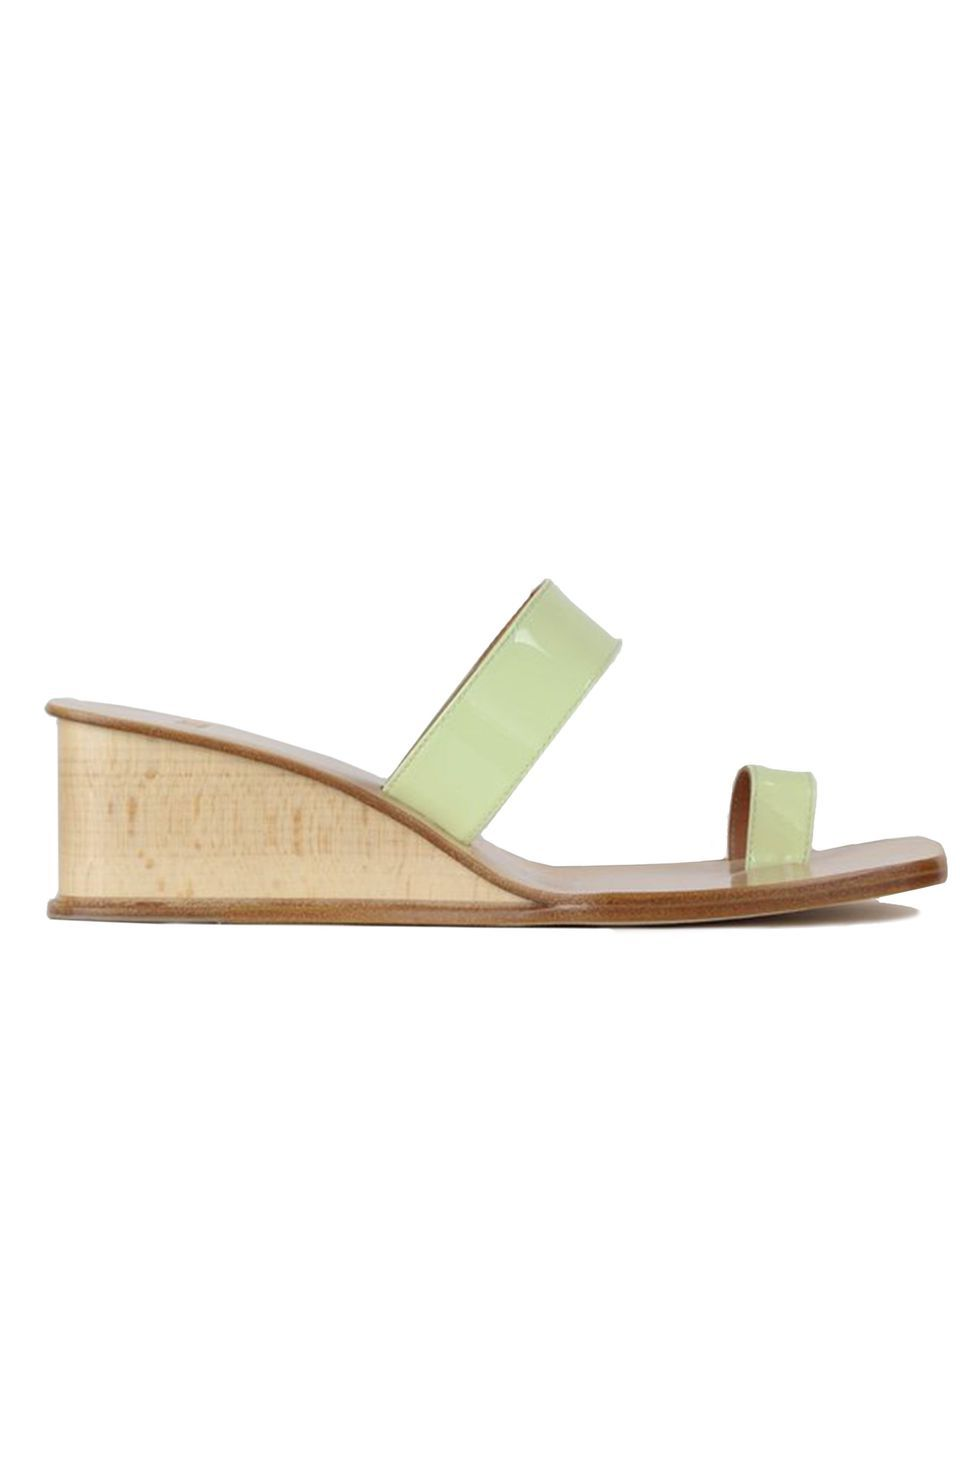 bc244dd5d2b A Massive Roundup of the Summer Shoes We Can t Stop Thinking About ...